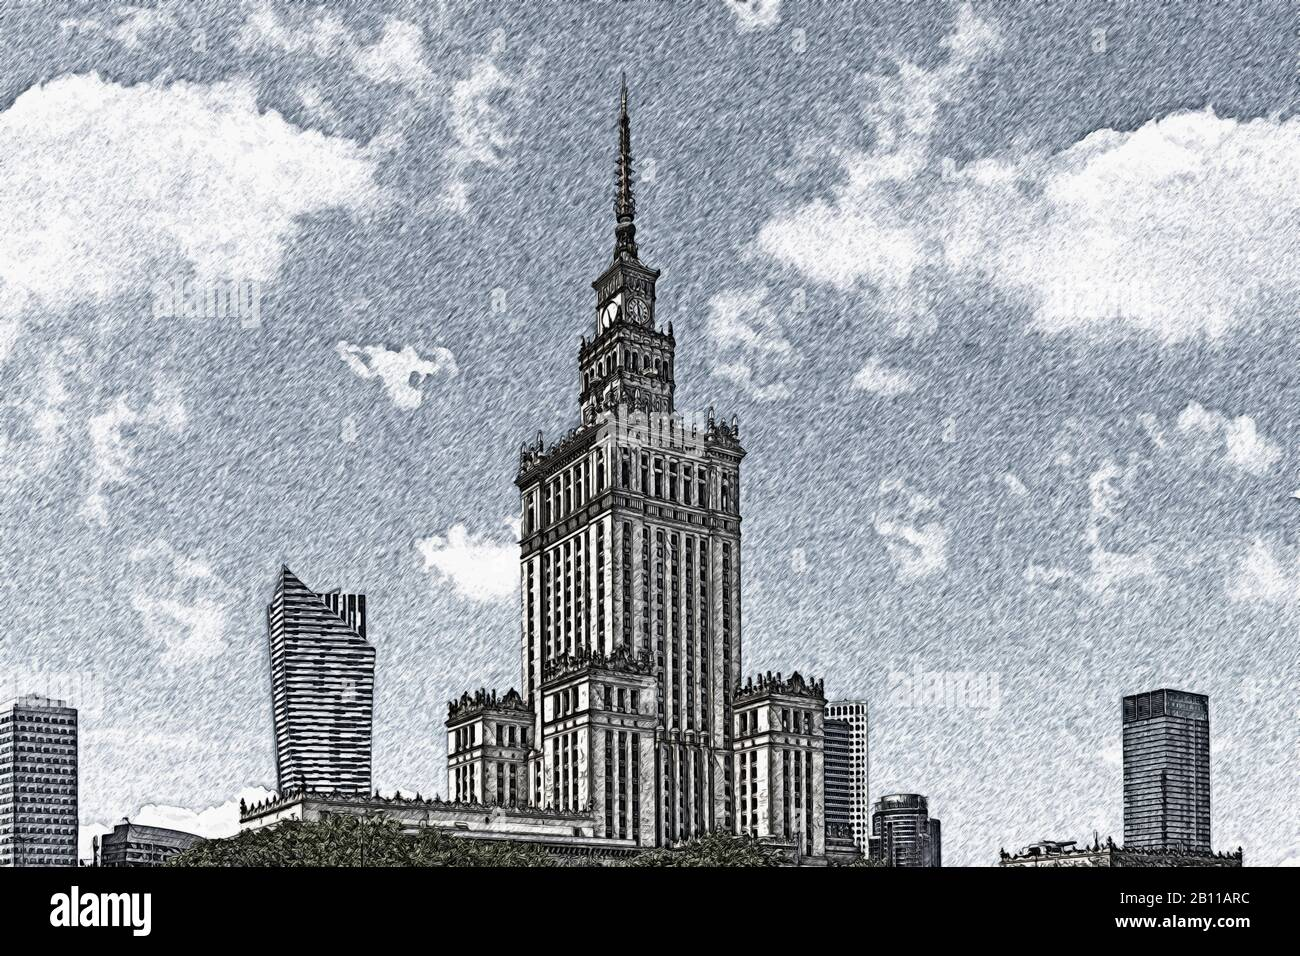 The Palace of Culture and Science (Palac Kultury i Nauki) was built between 1952 and 1955, Warsaw, Masovian, Poland, Europe Stock Photo